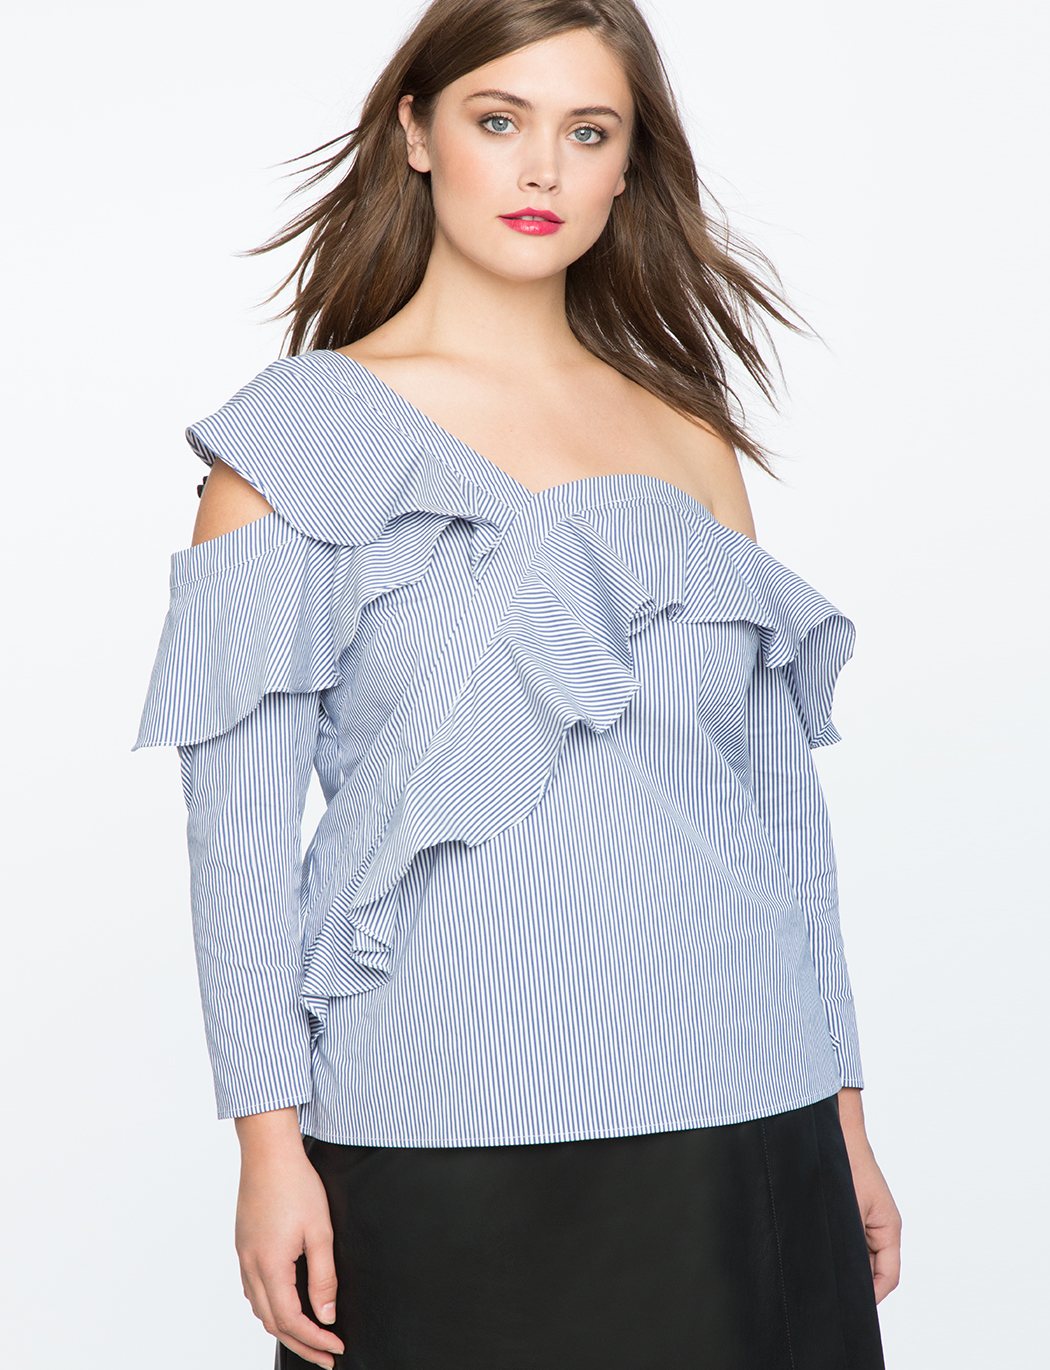 Ruffle Asymmetic One Shoulder Top